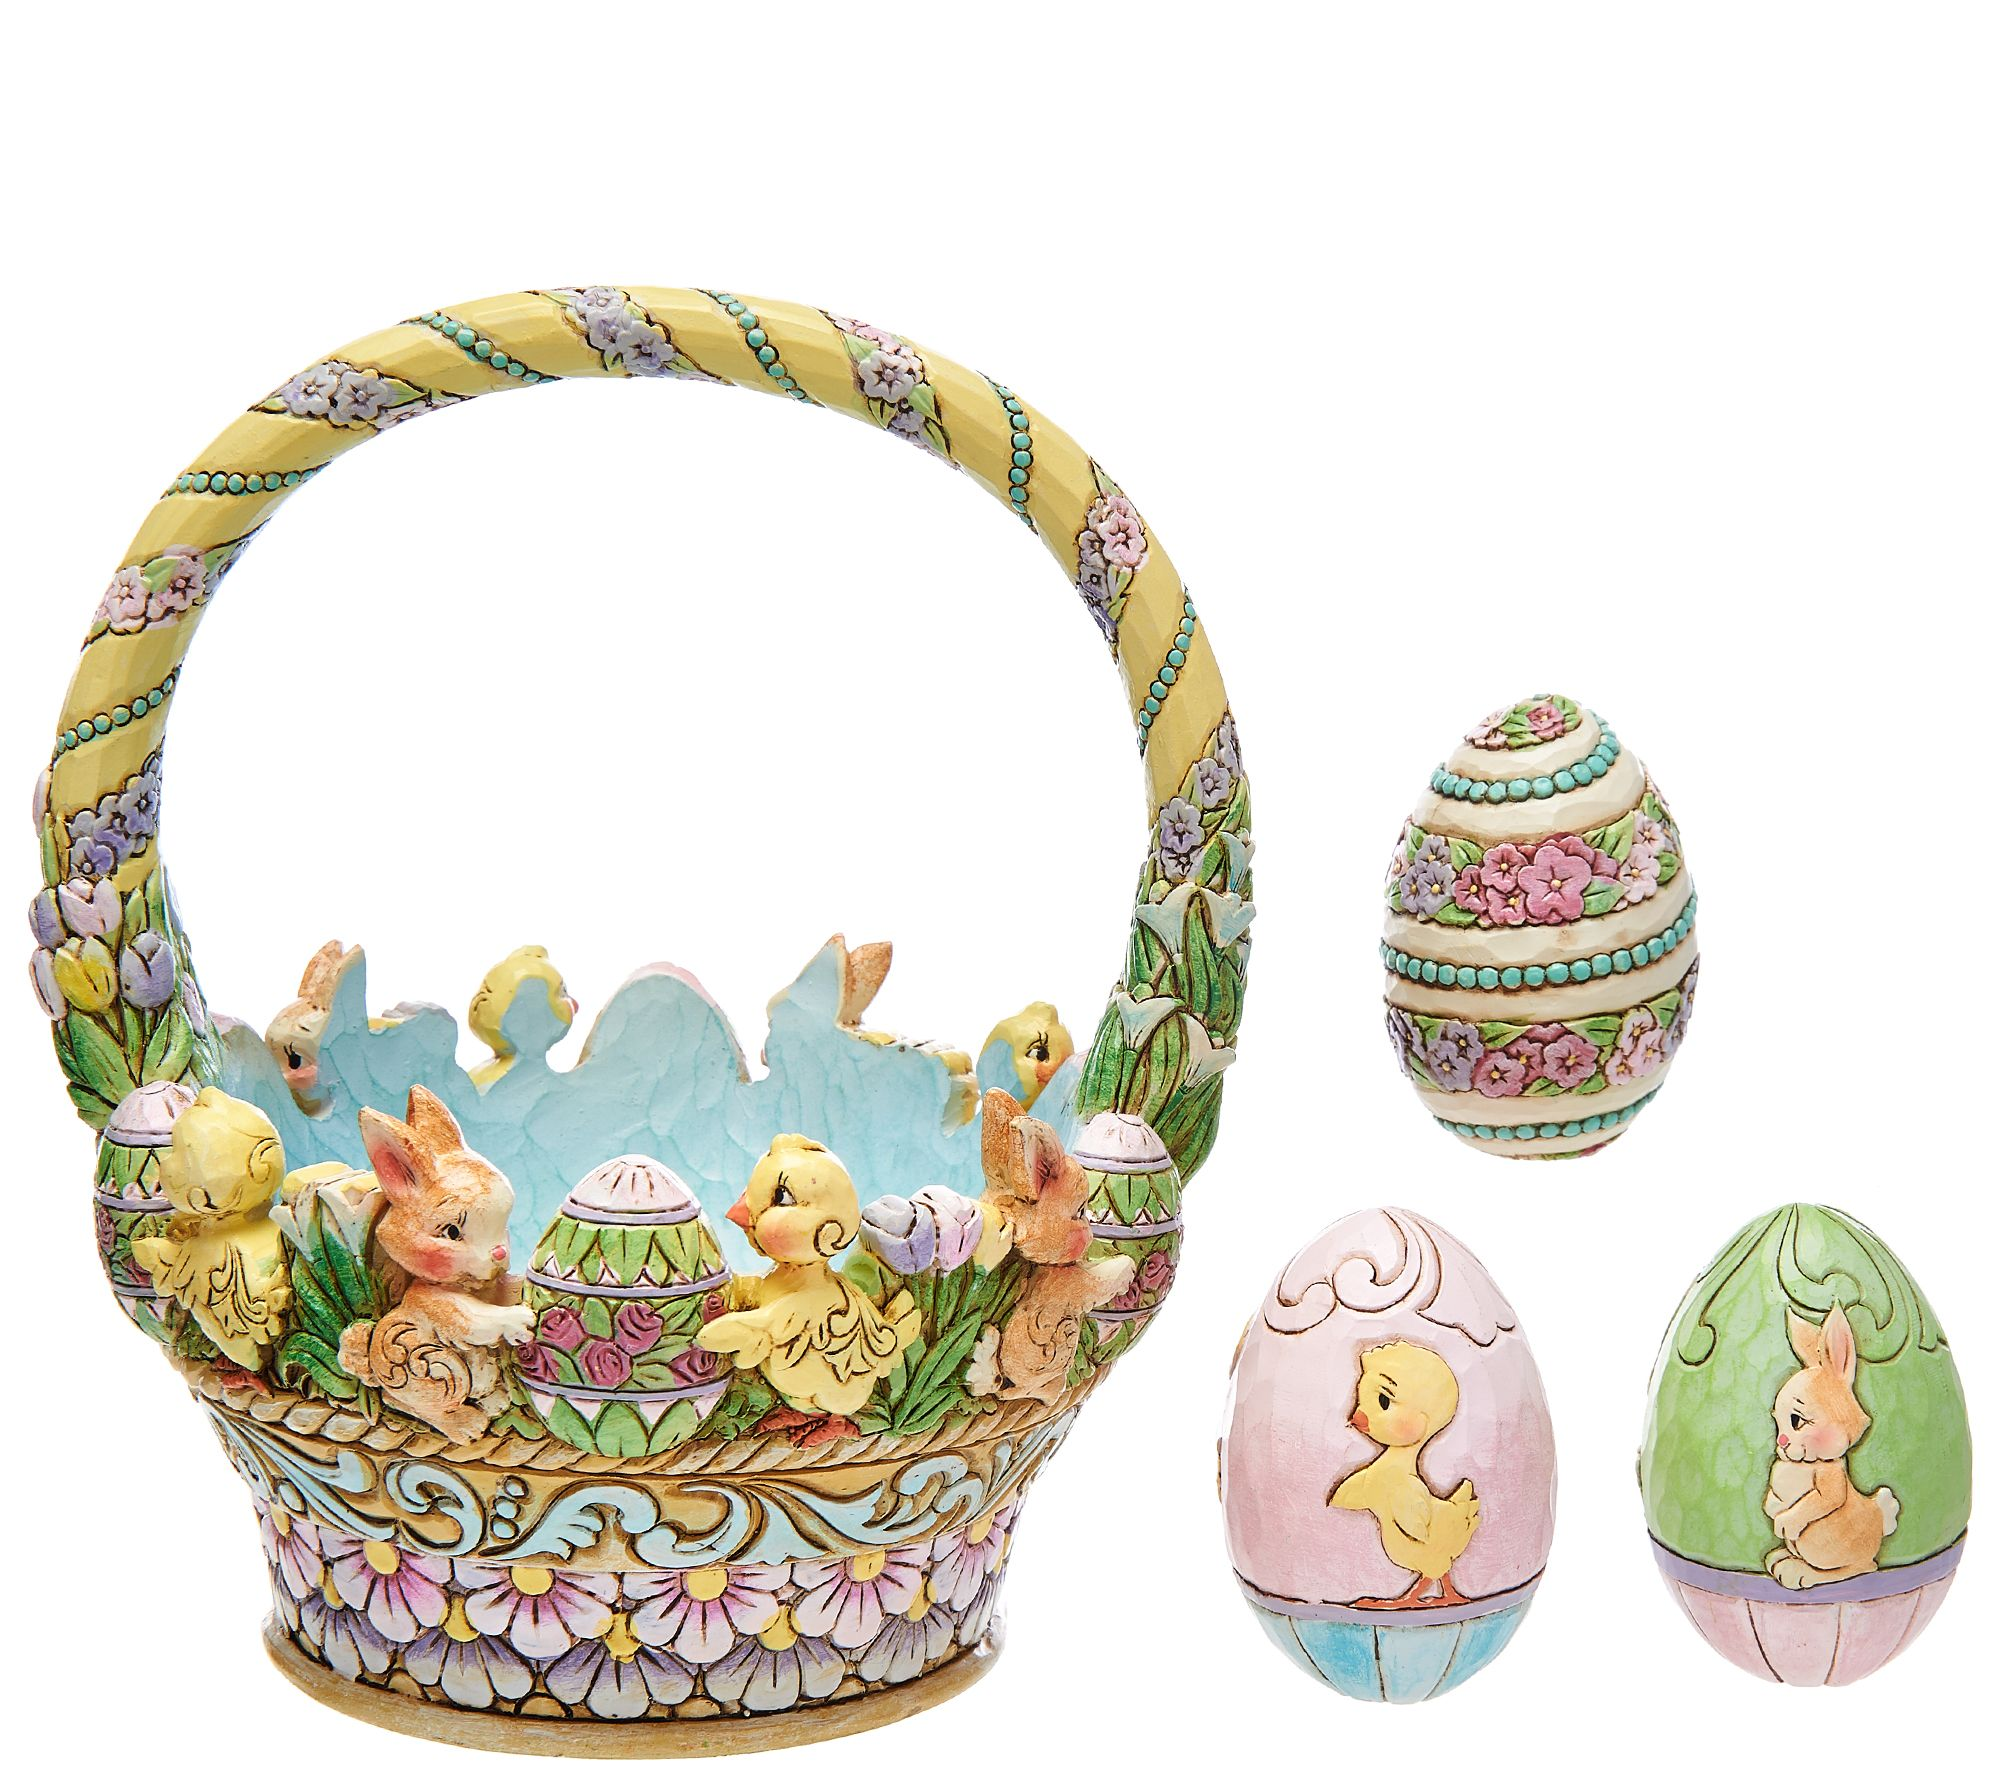 Jim shore 12th annual easter basket page 1 qvc negle Choice Image